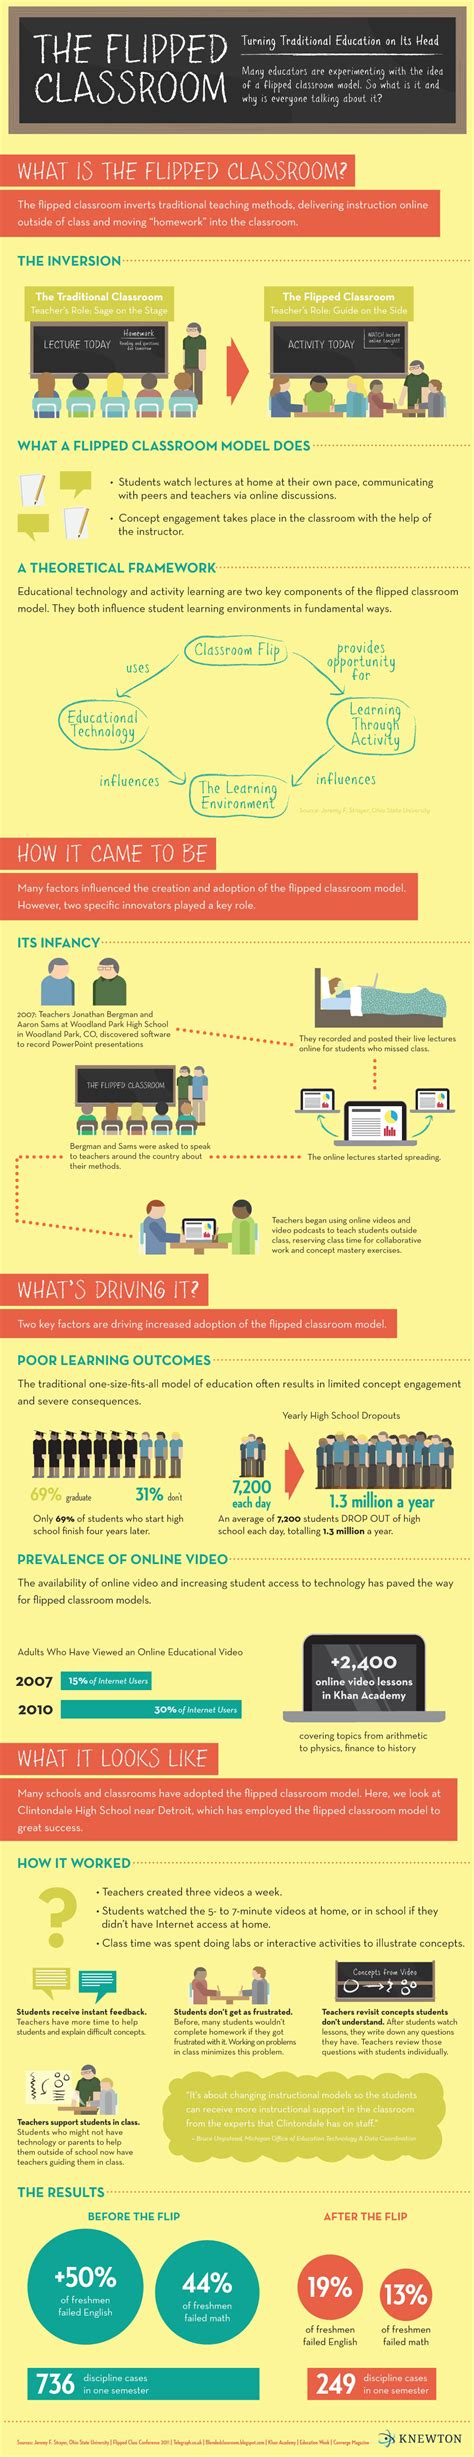 blended learning flipped classrooms a comprehensive guide teaching learning in the digital age books flipped classroom infographic knewton